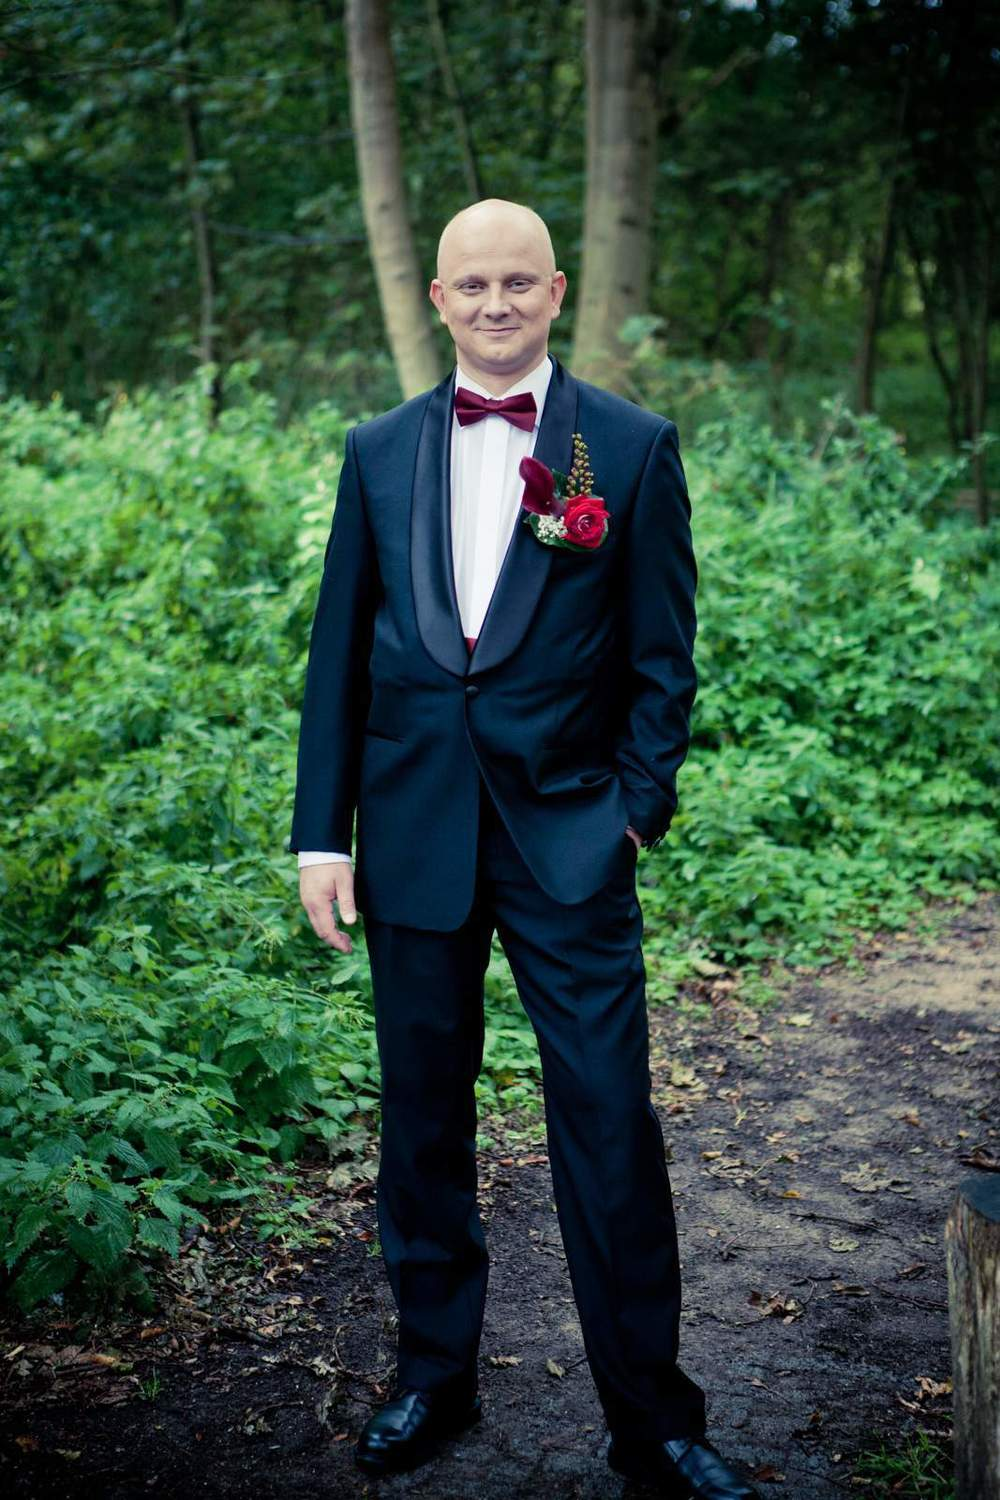 The Hague Den Haag Wedding Photographer